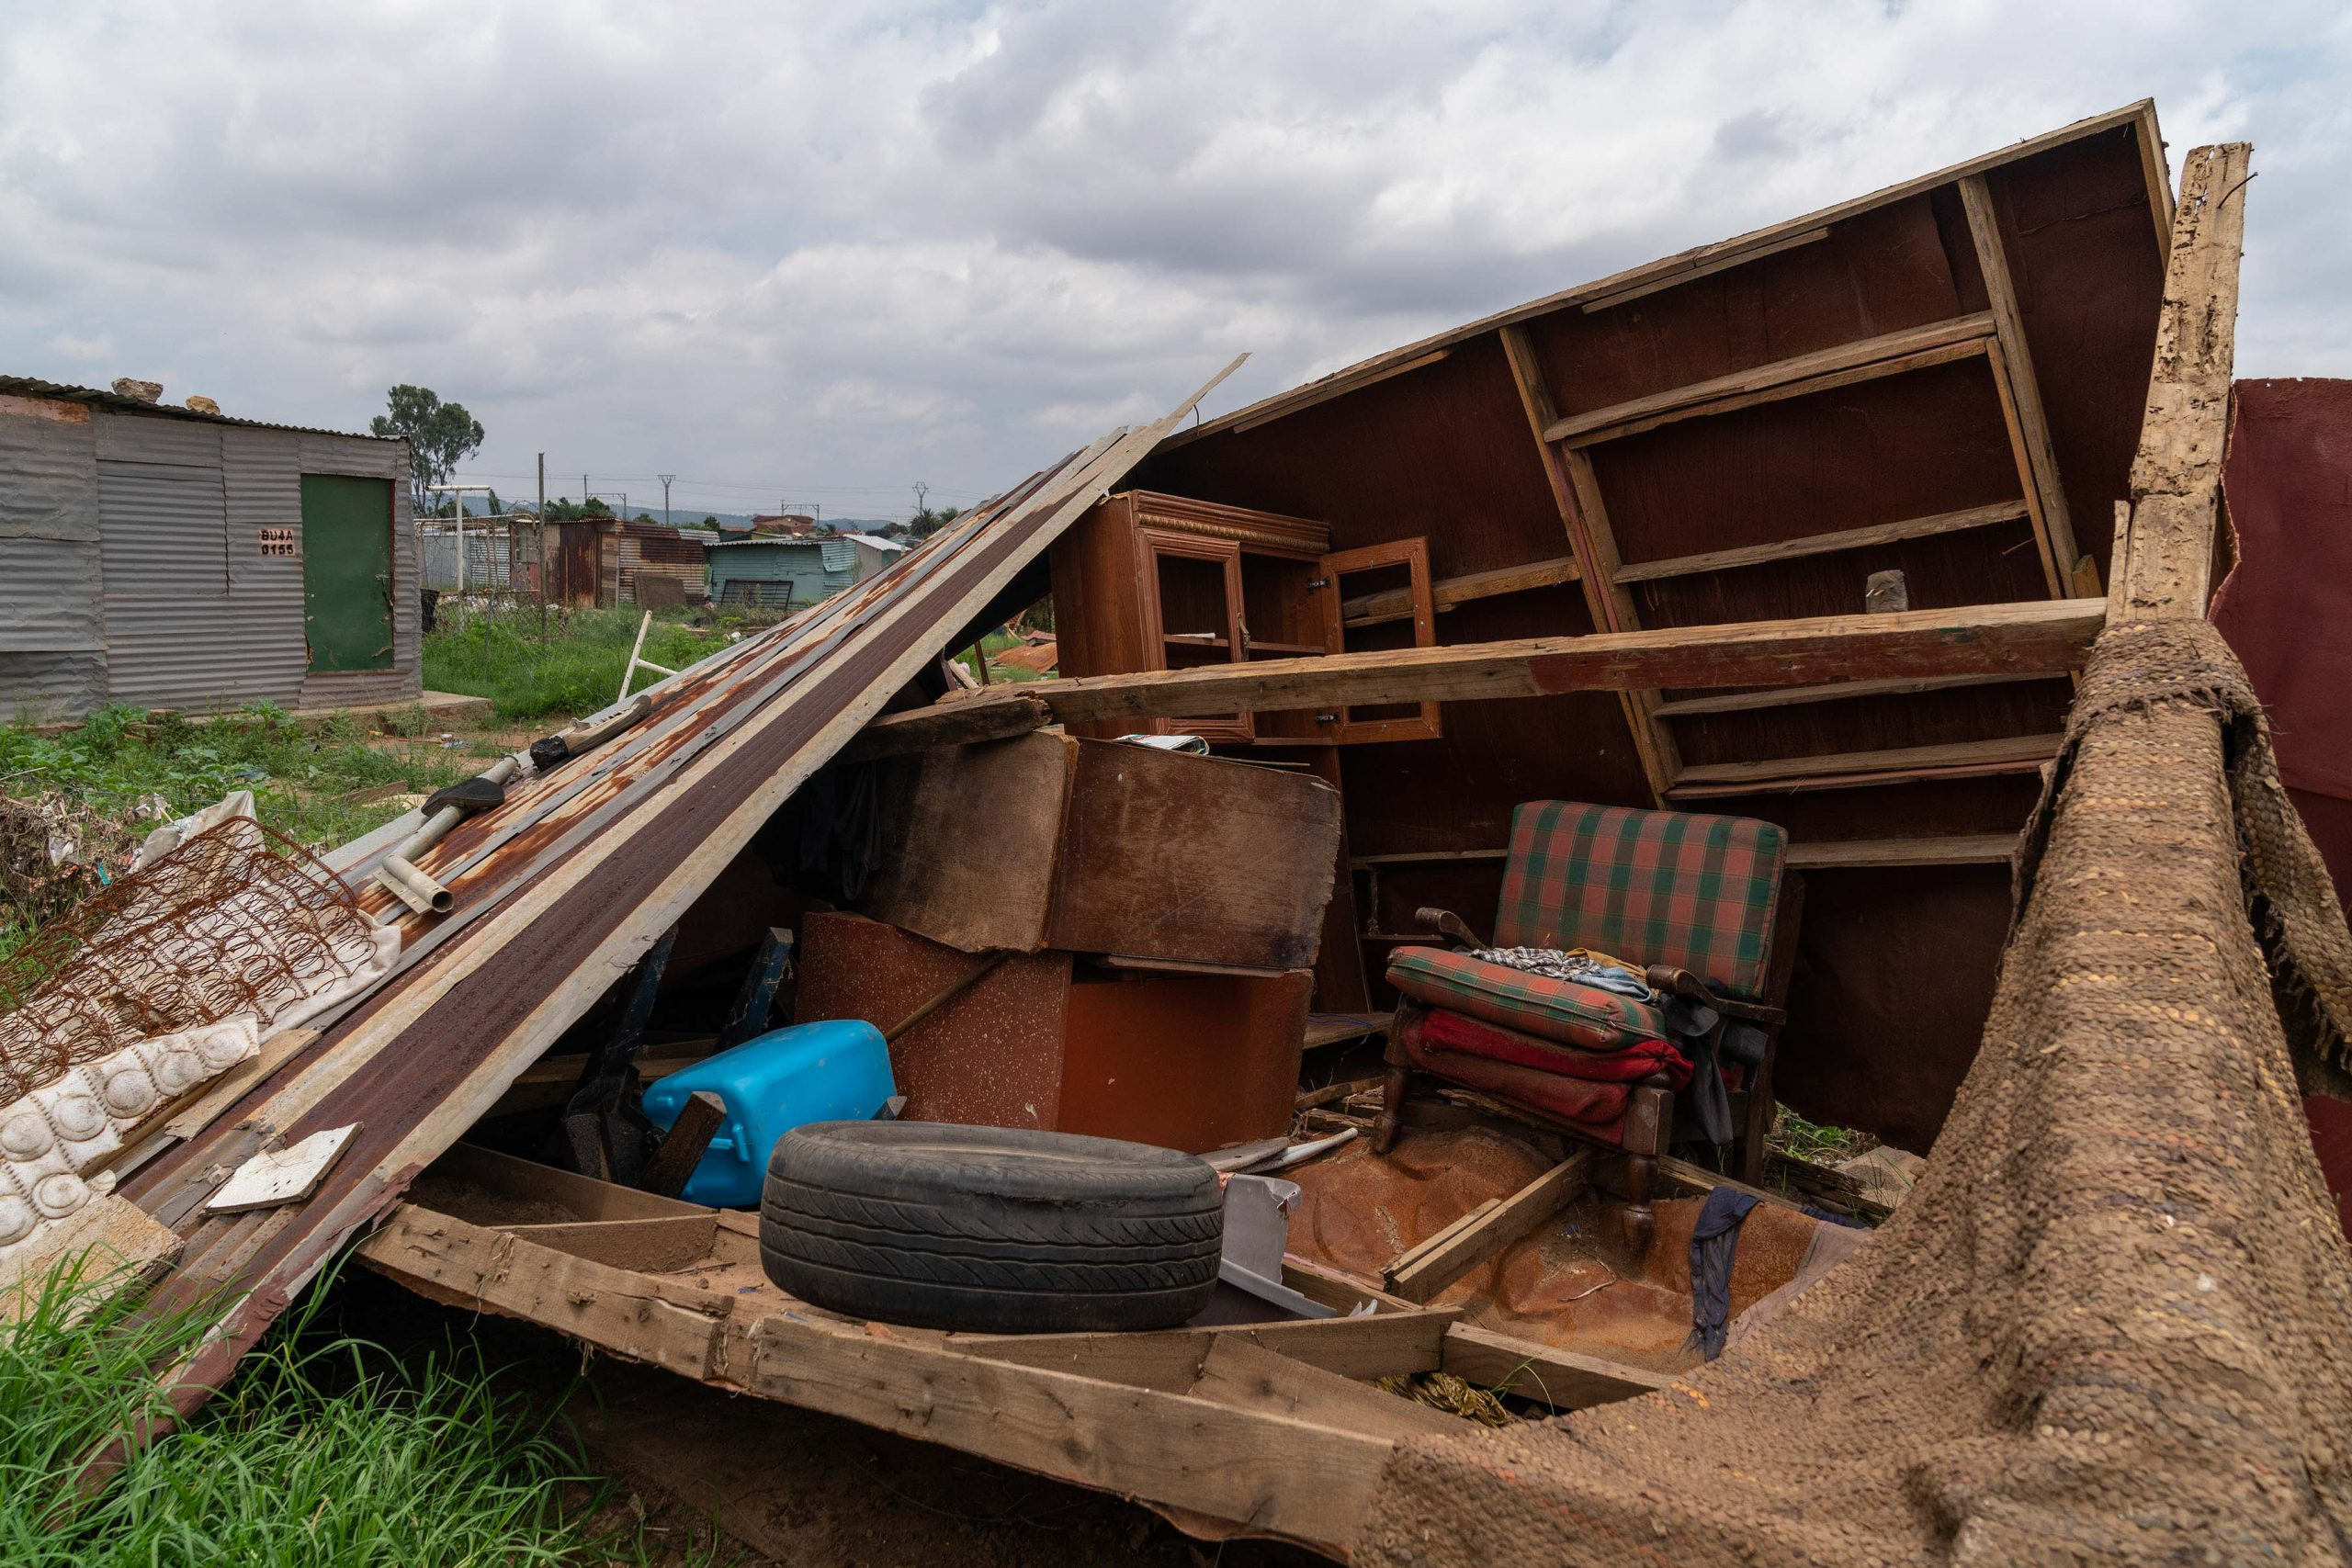 21 January 2020: Inside a gutted shack home at Seven Seven, a resident has salvaged some furniture from the floods.